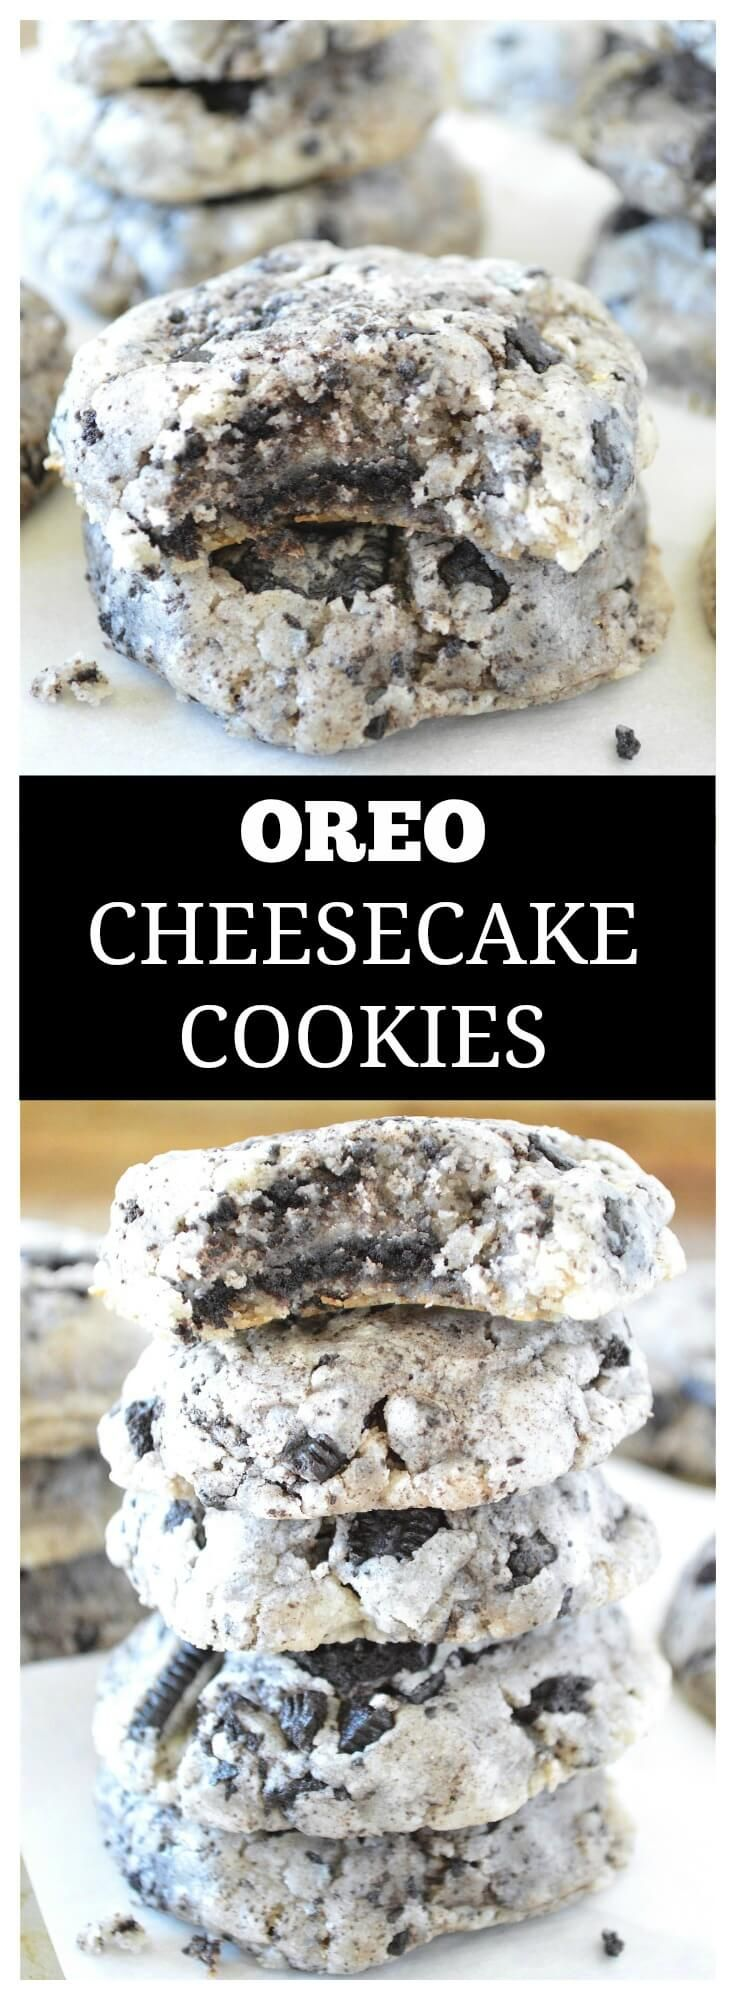 Thick, chewy cookies PACKED with Oreo cheesecake flavor!